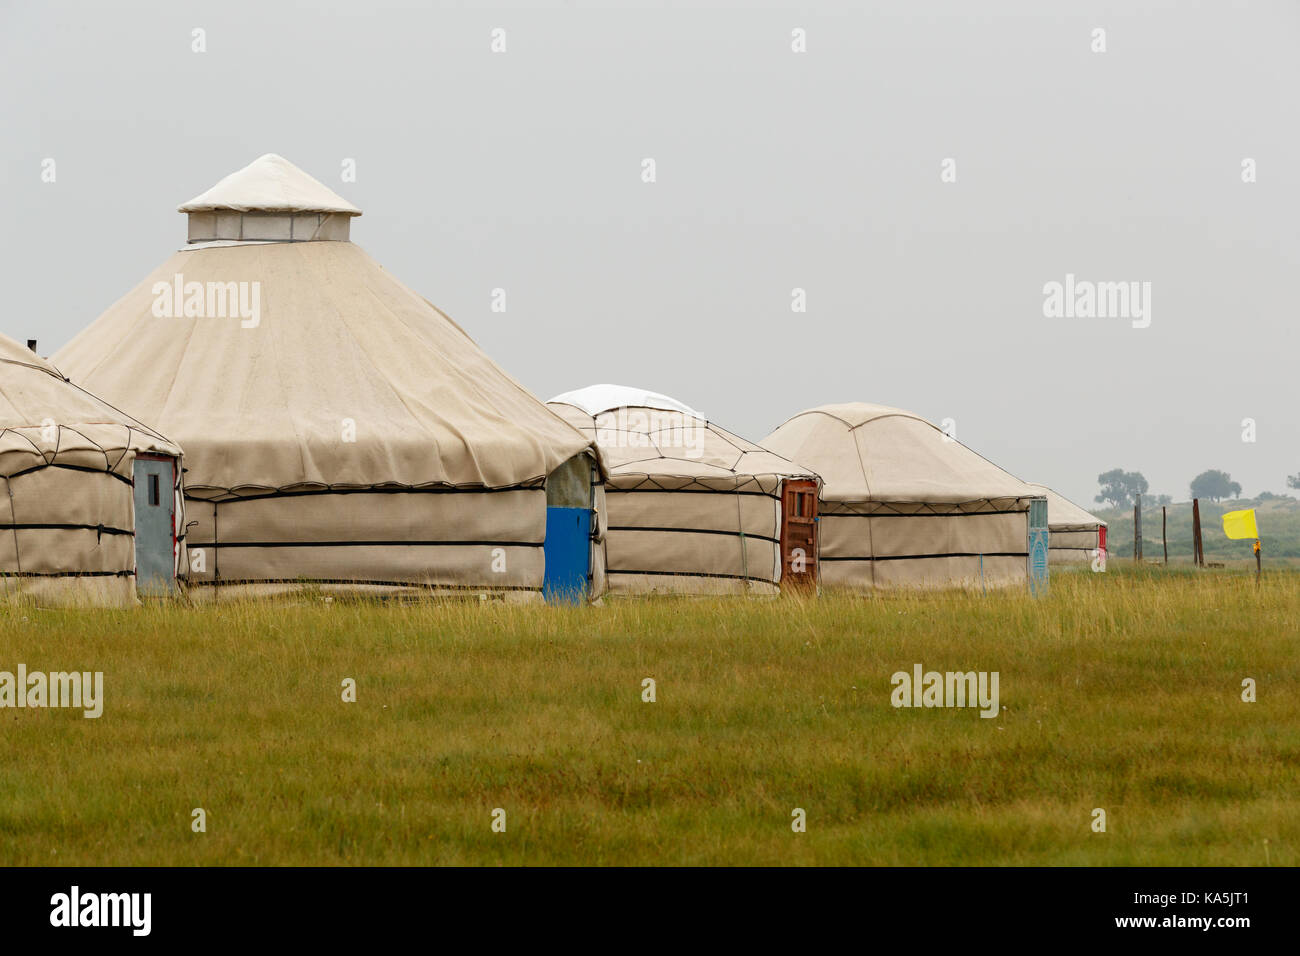 Traditional Yurts  or tents in the grasslands of Mongolia Stock Photo